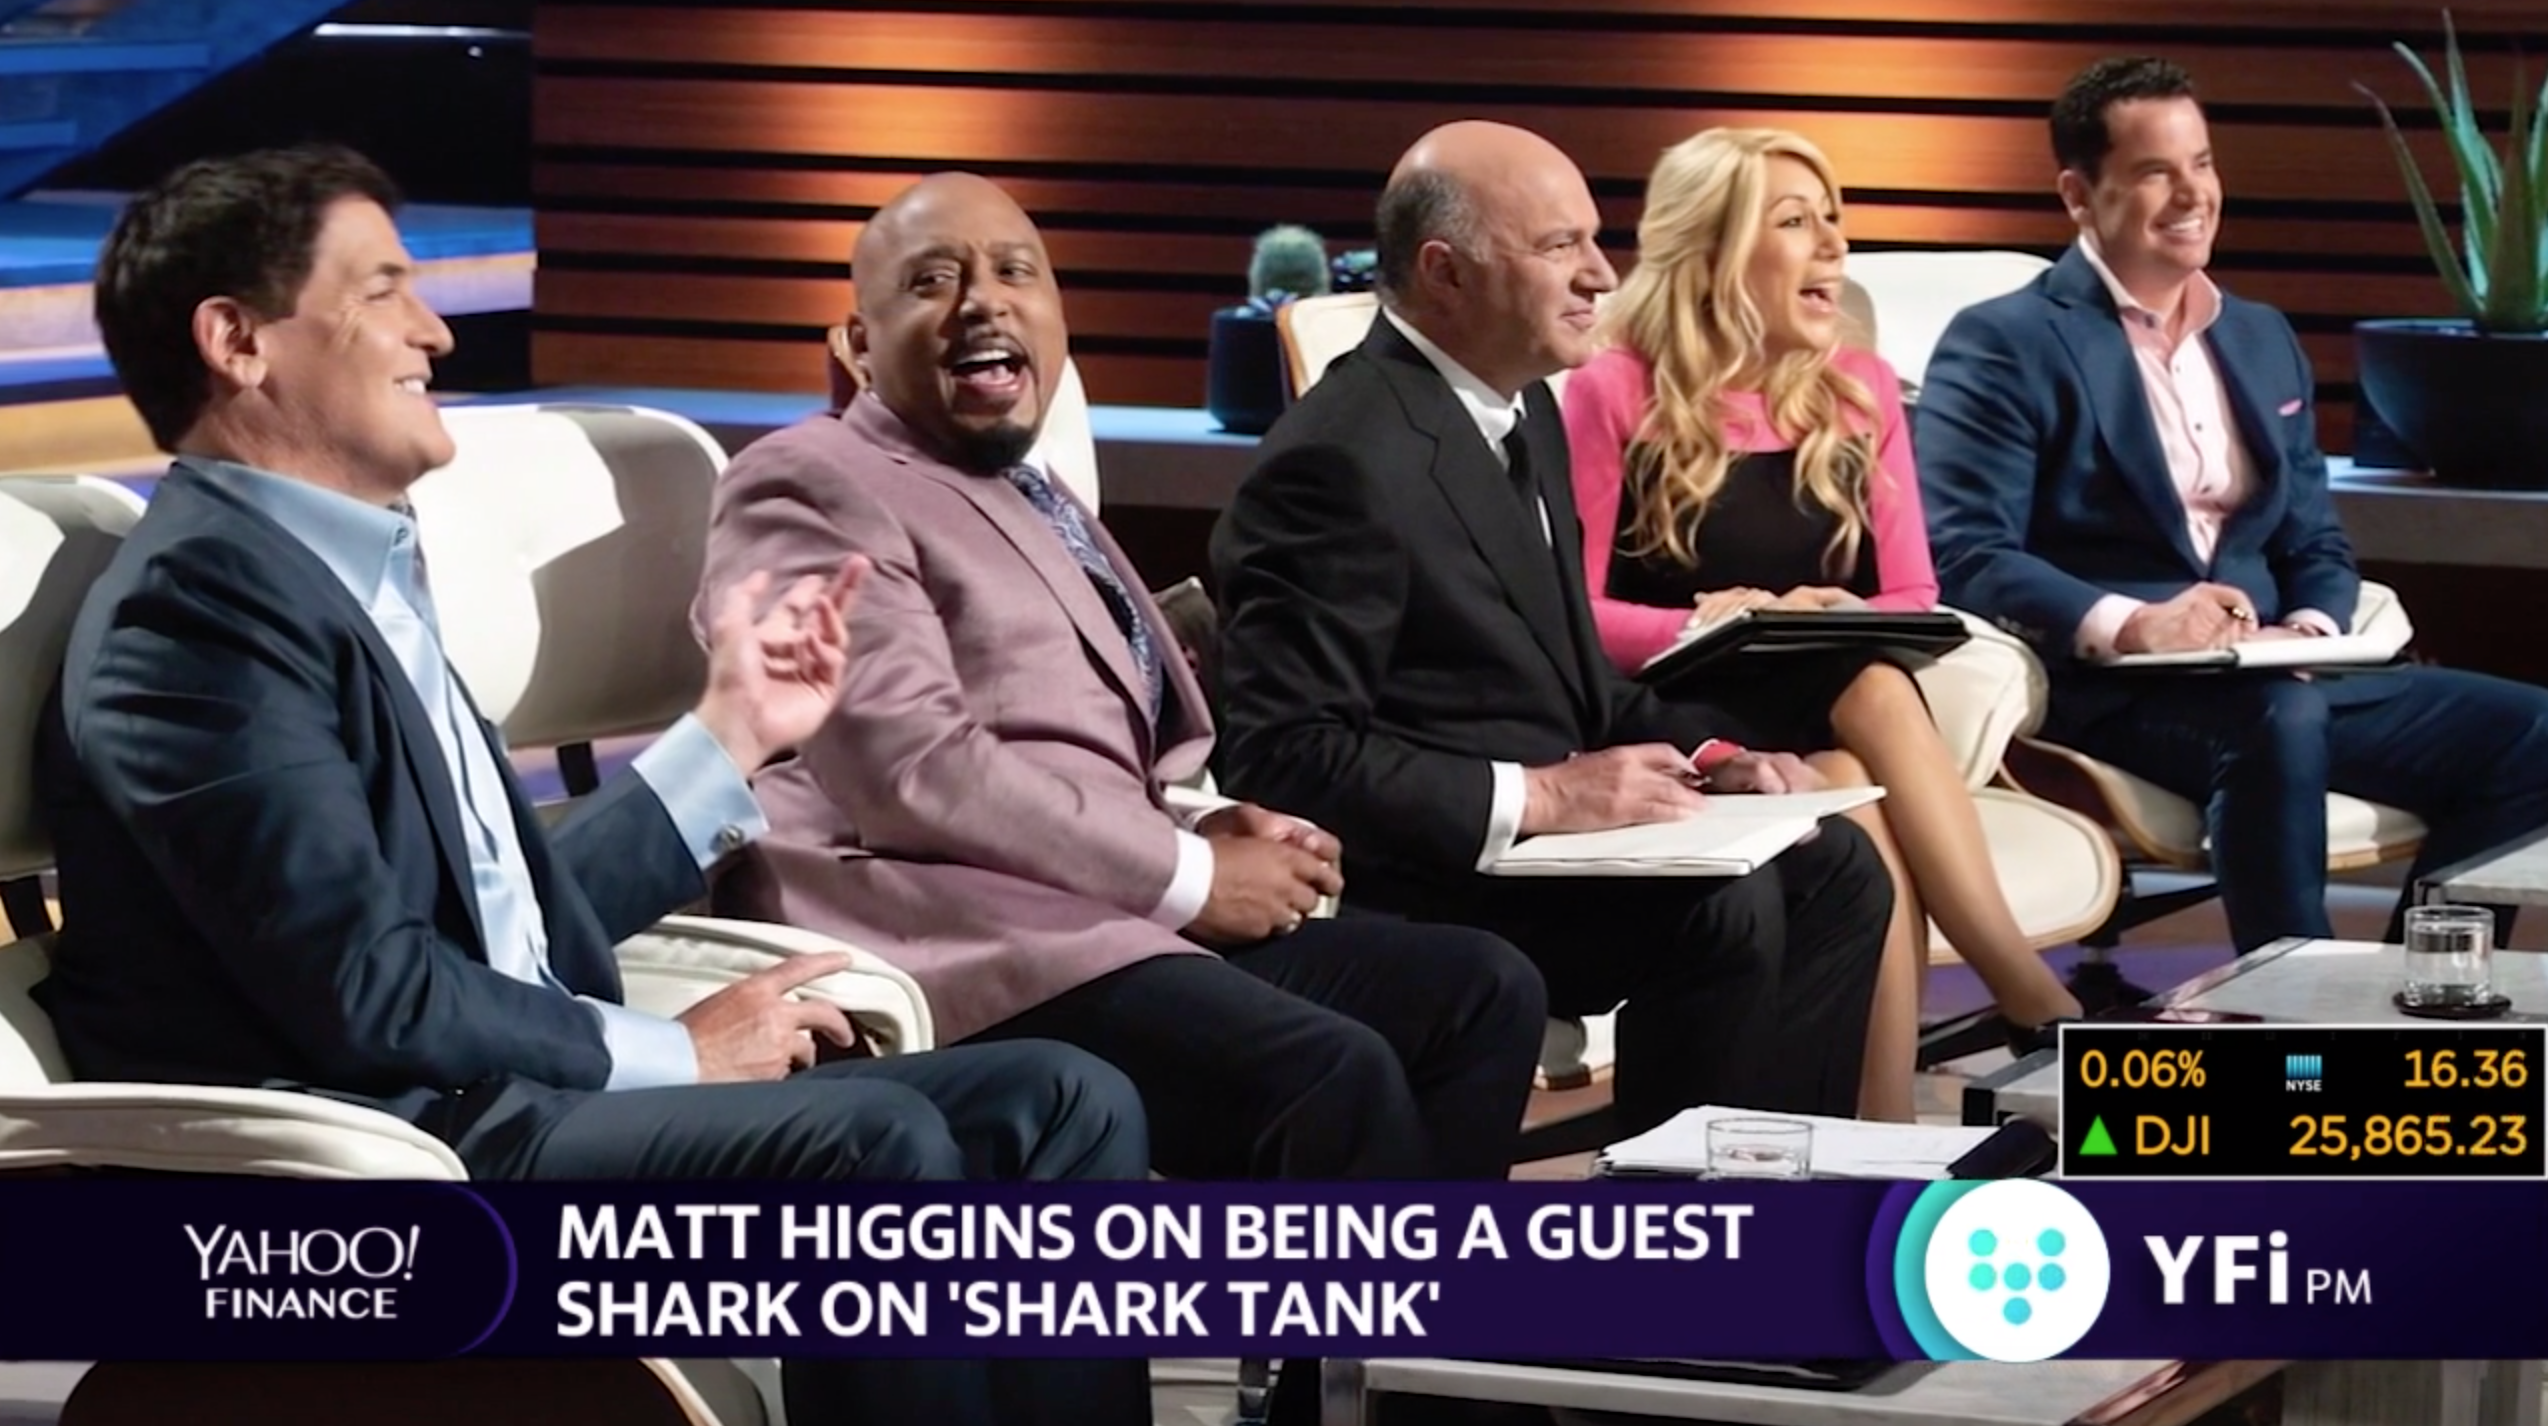 Guest 'Shark' Matt Higgins gives investing tips, dos and don'ts for entrepreneurs